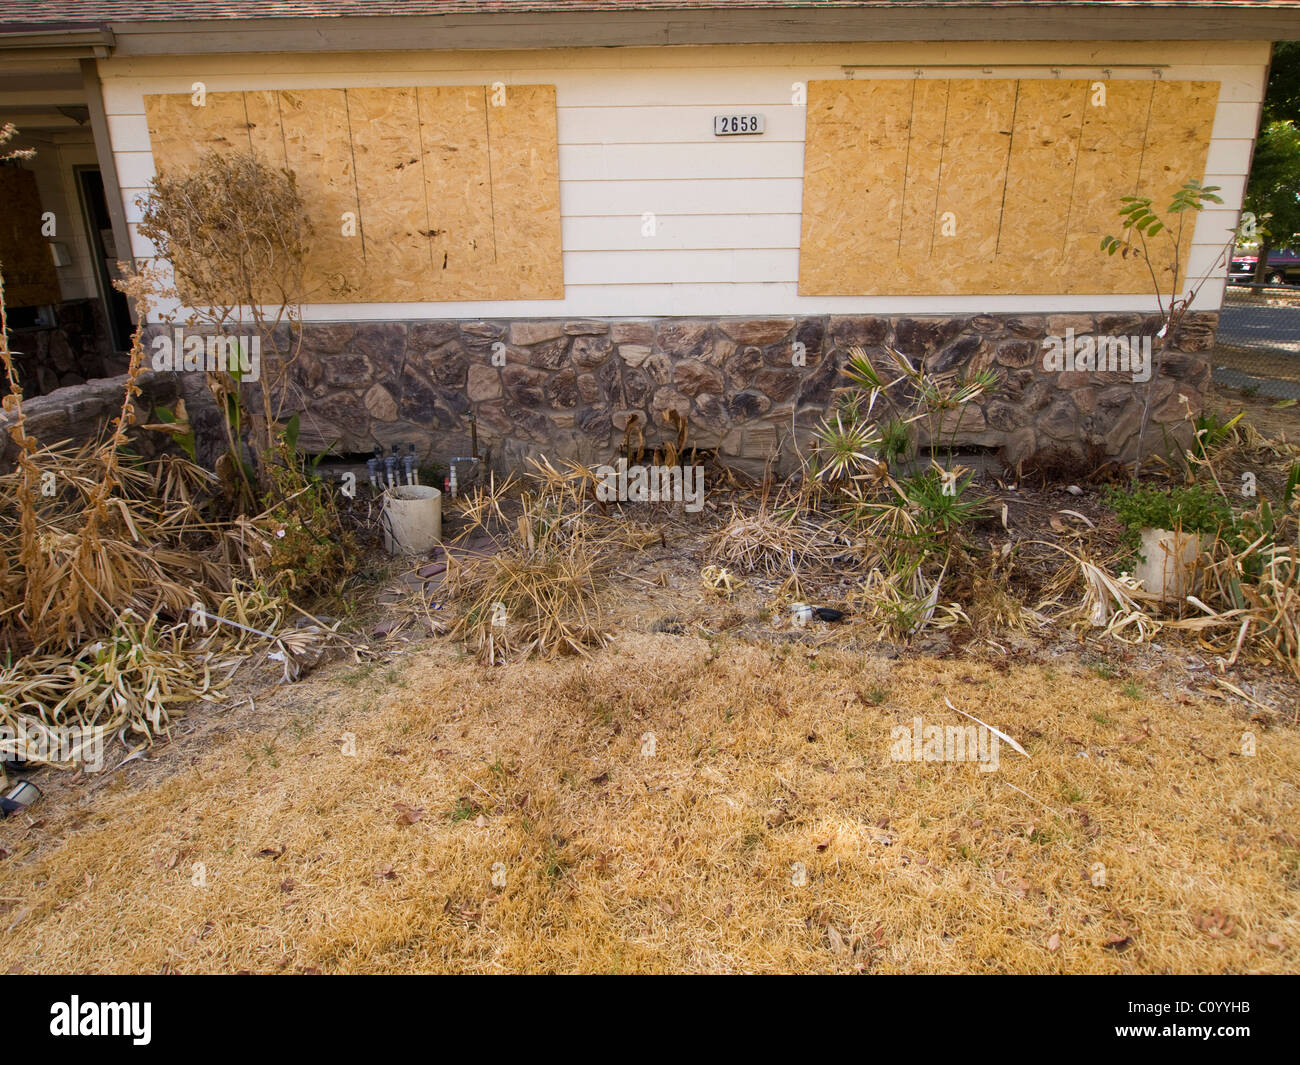 Boarded up foreclosed home in Fresno, California, United States - Stock Image